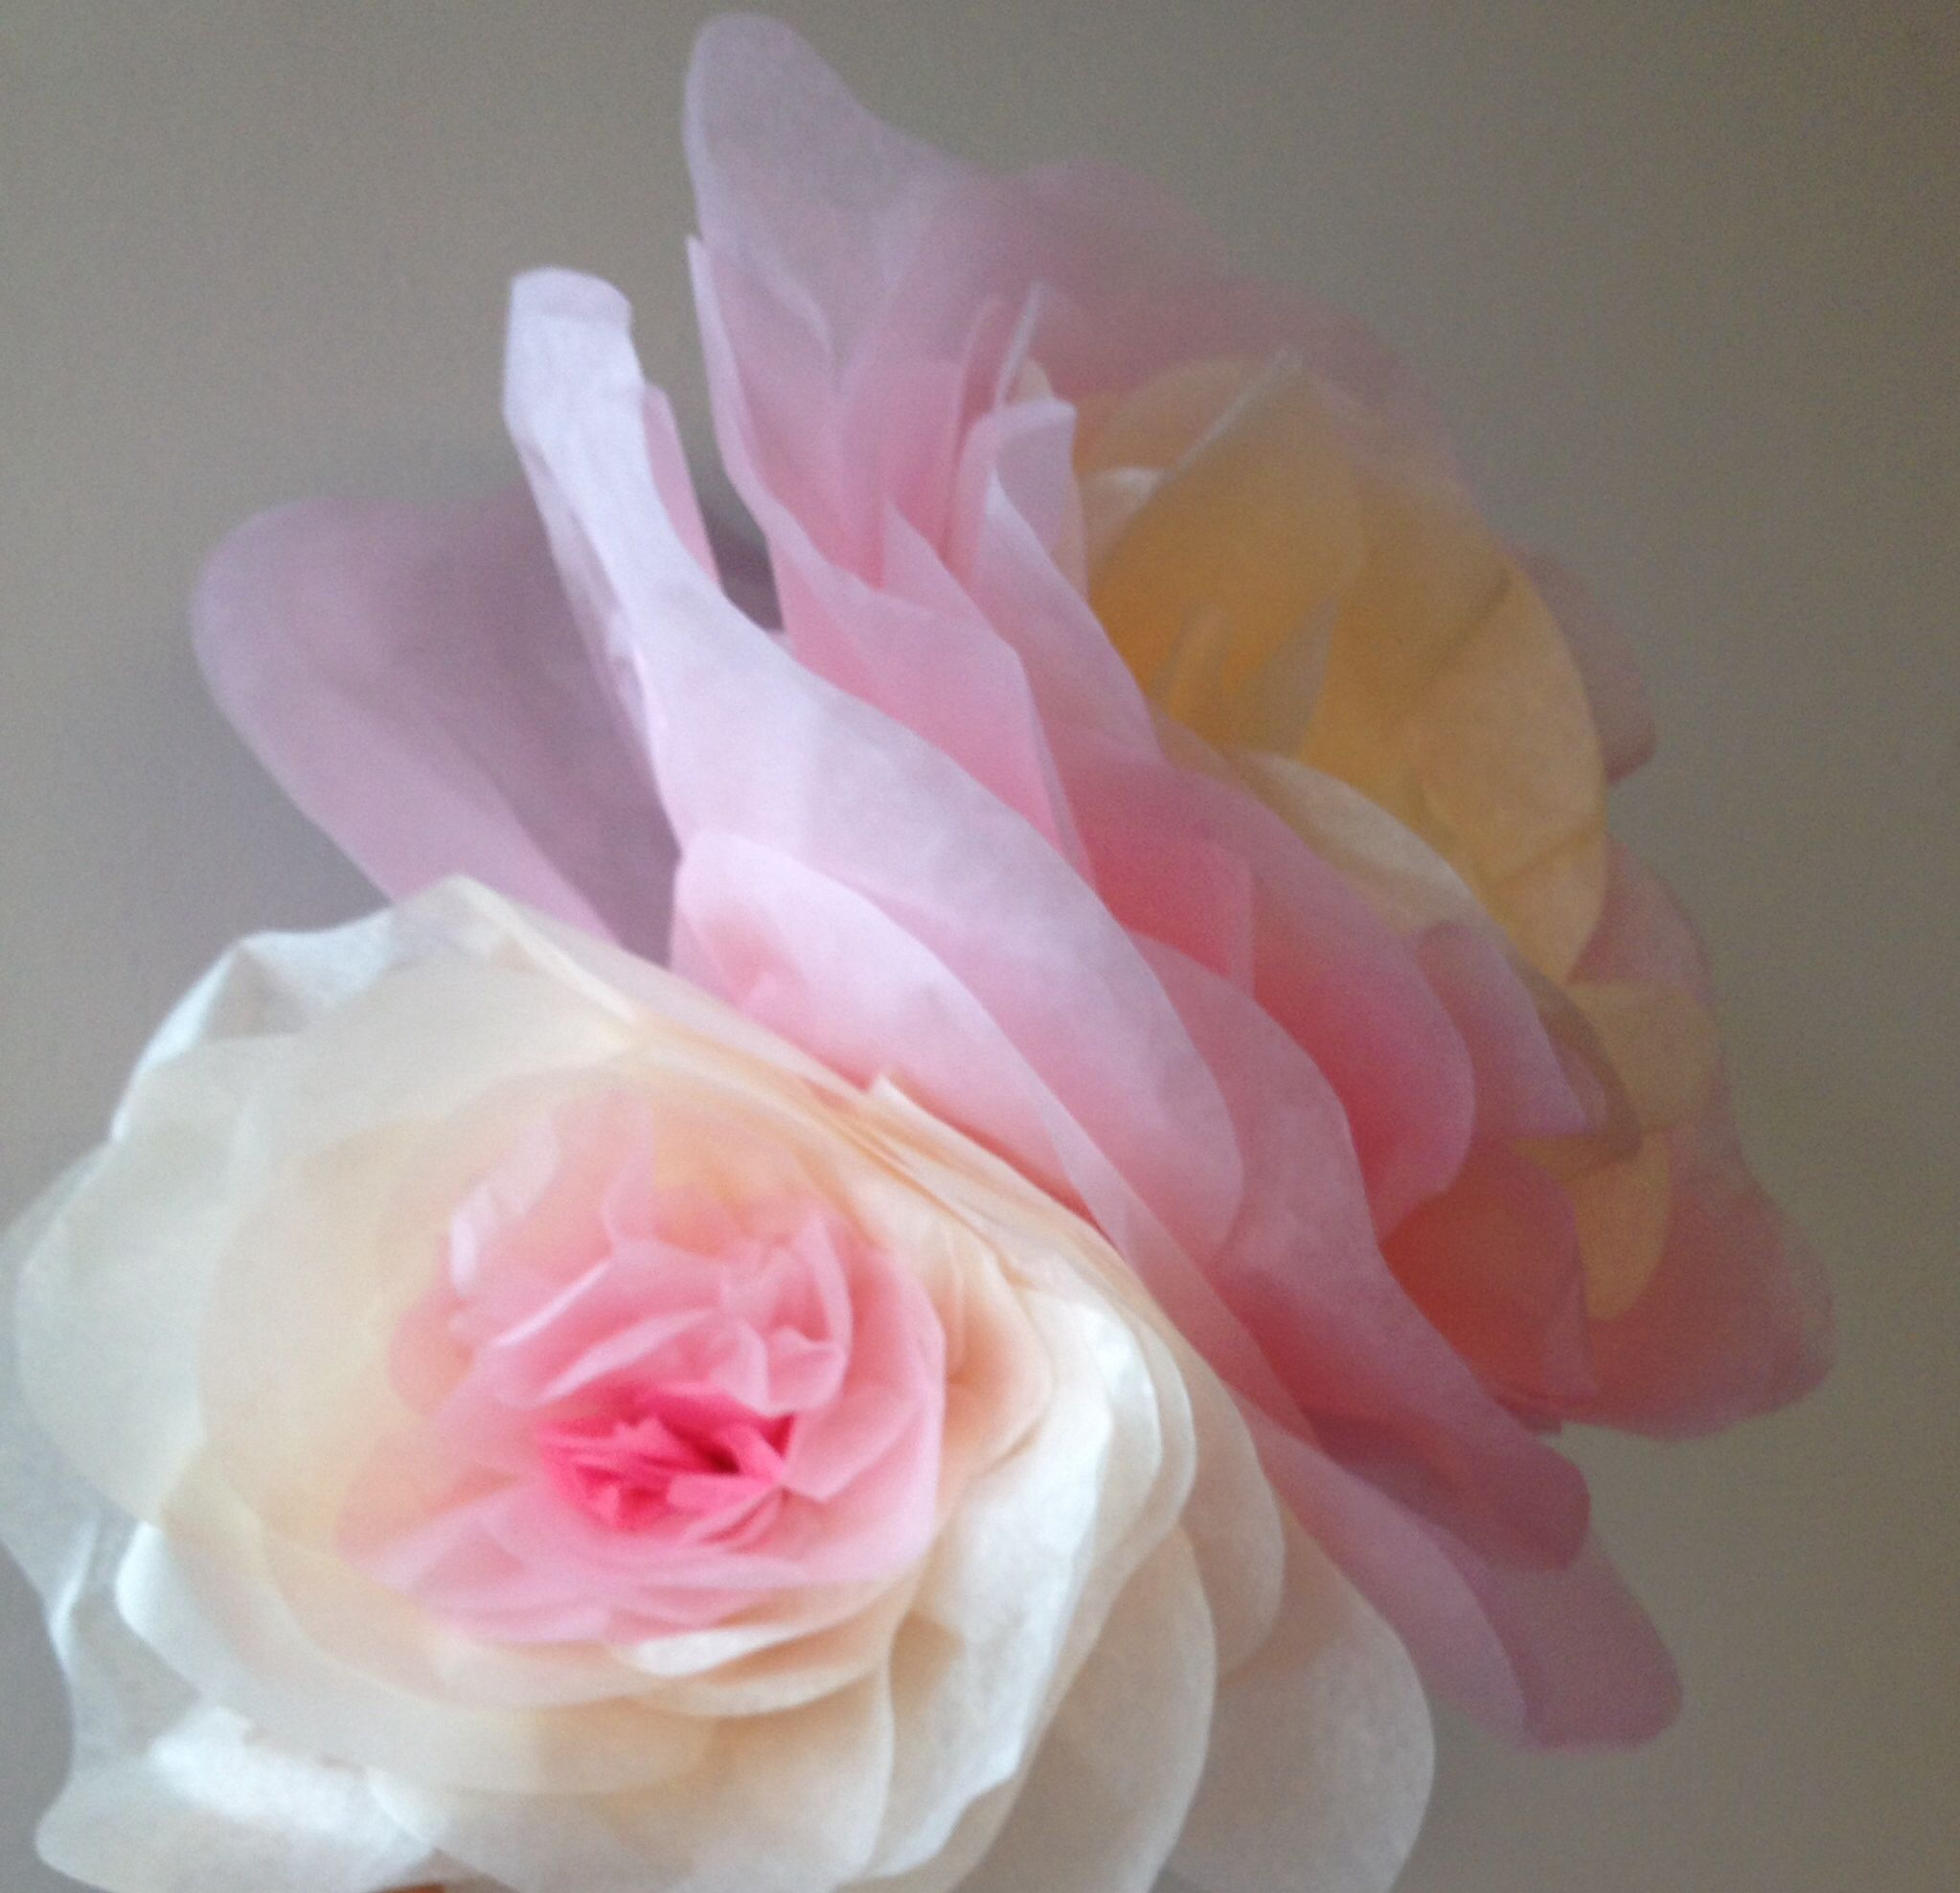 Paper flowers made out tissue paper colours white cream paper flowers made out tissue paper colours white cream light rosa made by anna maria rnsch barcelona mightylinksfo